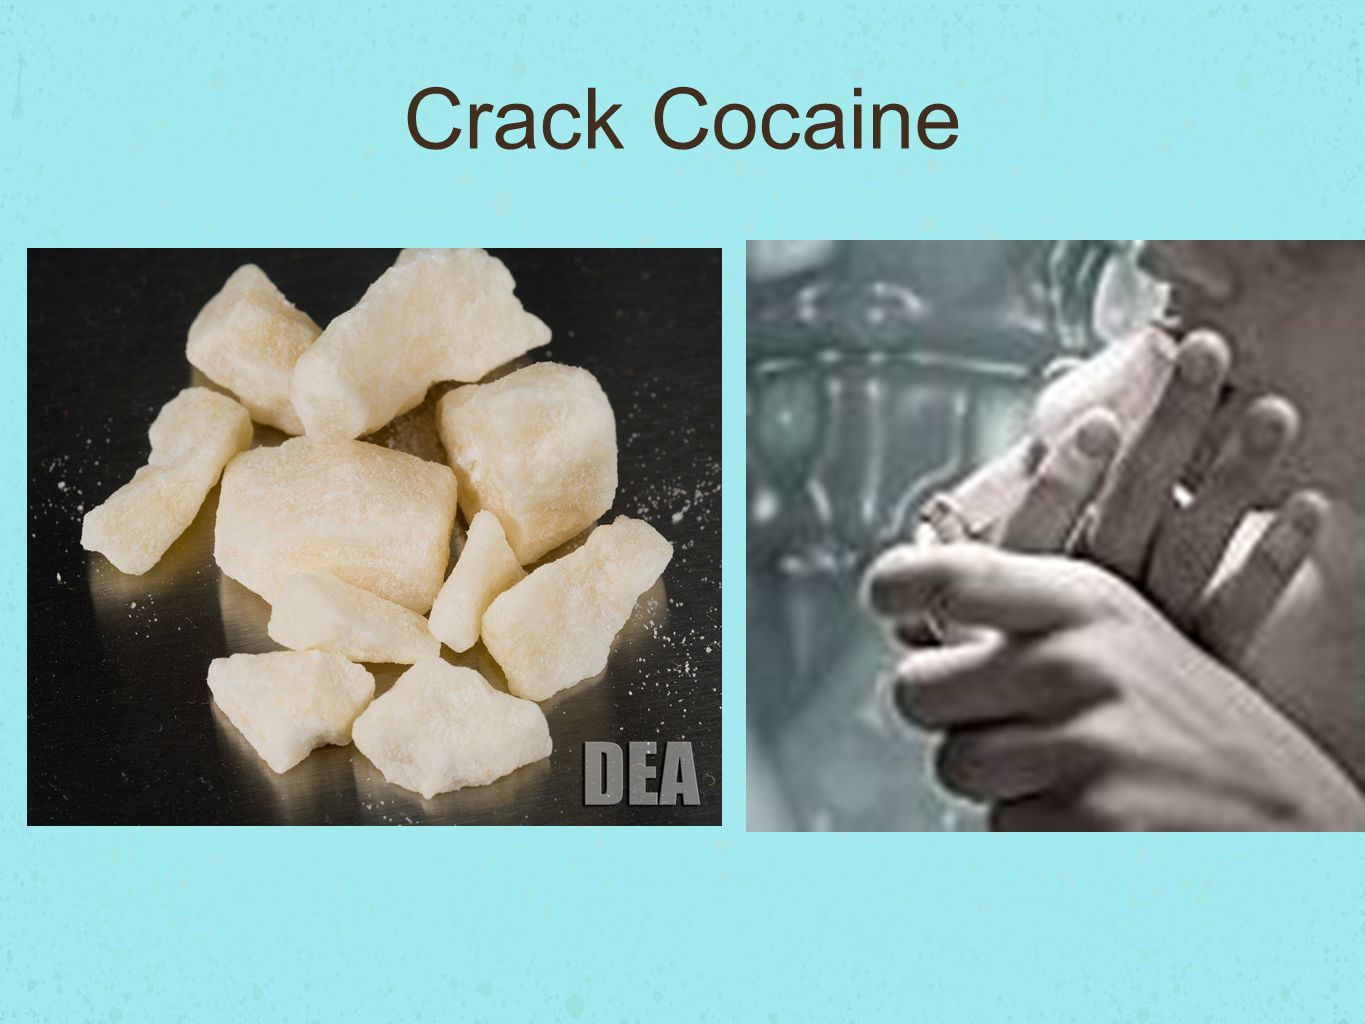 """effects of cocaine and crack cocaine There are many street names for cocaine, including """"crack,"""" """"blow,"""" """"nose candy,"""" """"coke"""" and """"snow"""" cocaine effects can be severe, depending on the user, and can lead to medical problems including:."""